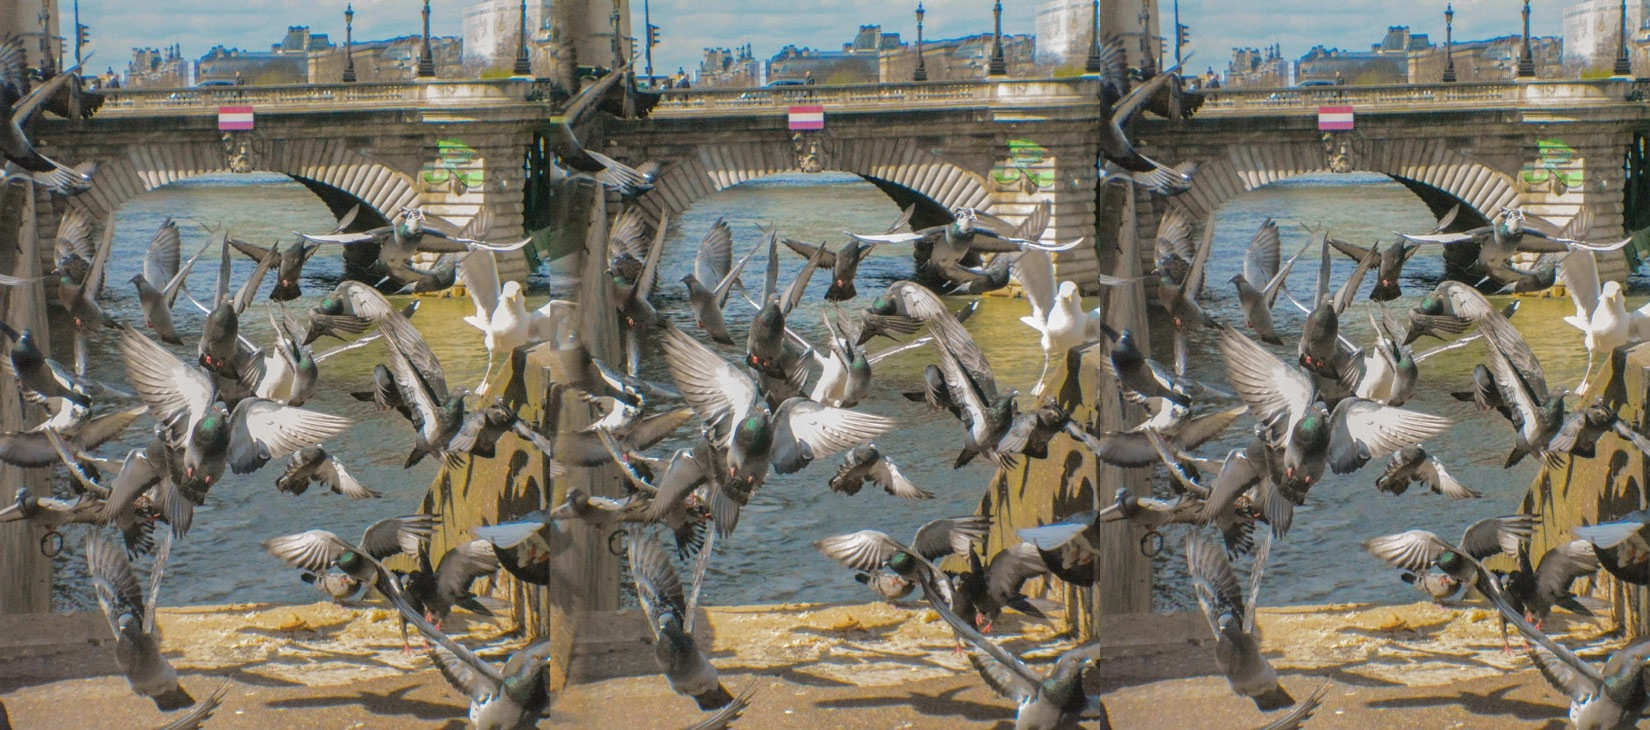 Flying crowd… — Stereoscopy by jacquesraffin